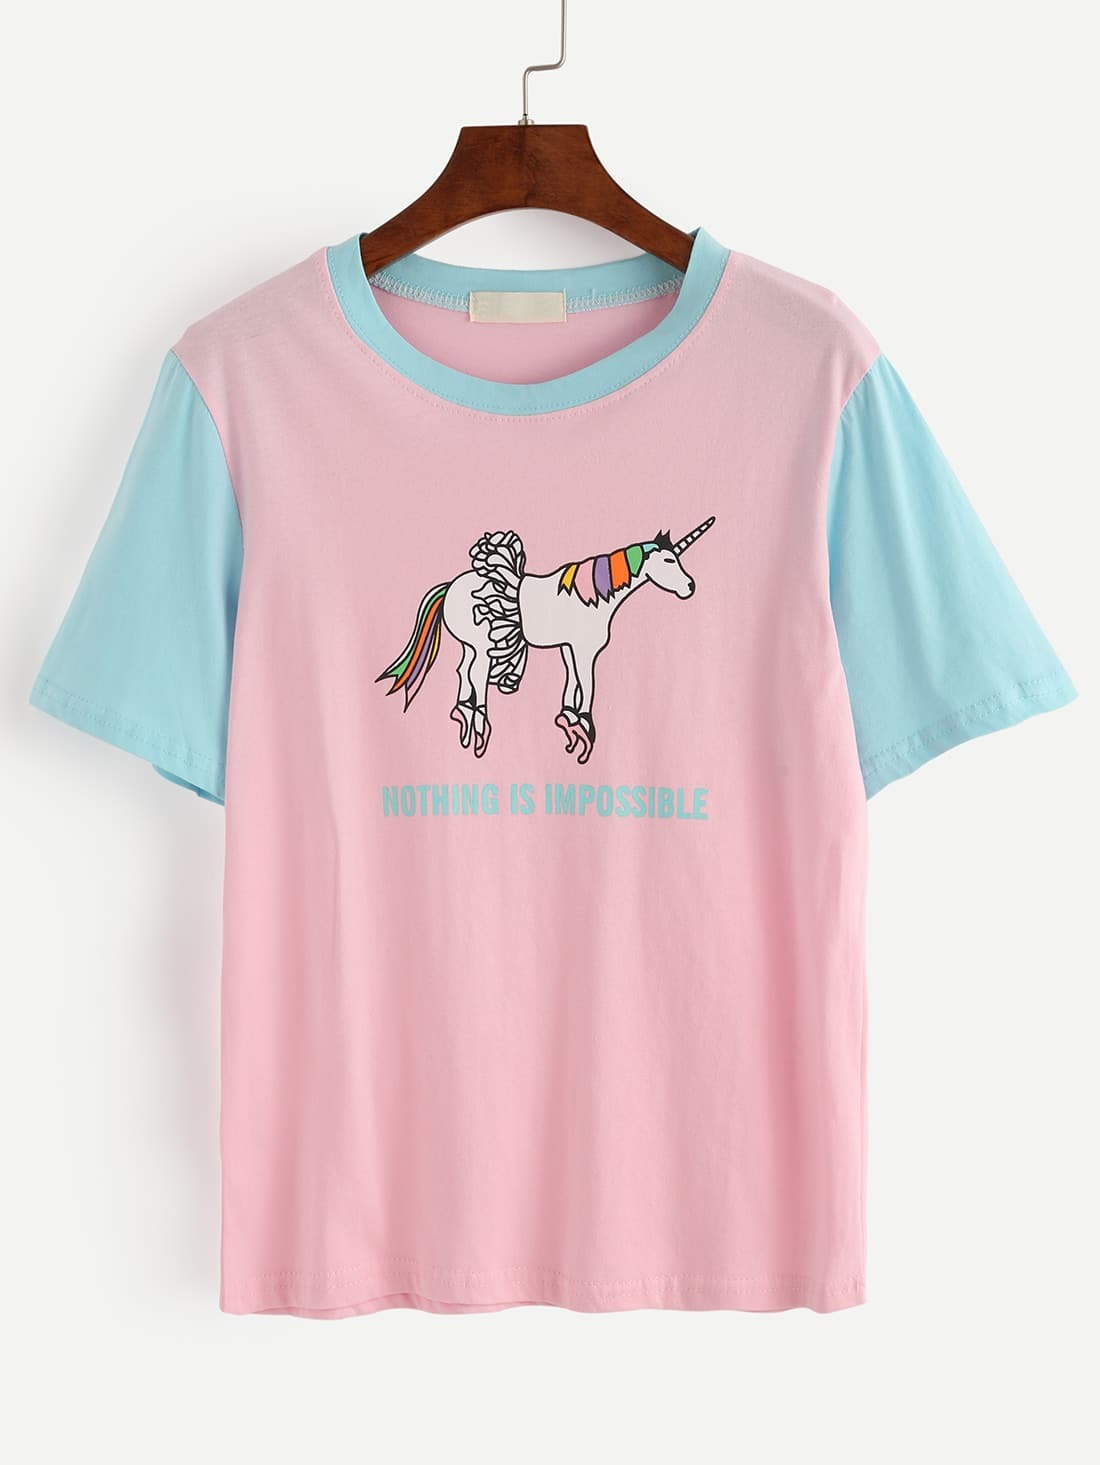 These cartoon t-shirts will leave you animated with the amount of choices you have. Browse a vareity of 90's cartoon t-shirts, vintage cartoon t-shirts and more. Travel across dimensions with a Ricky and Morty t .